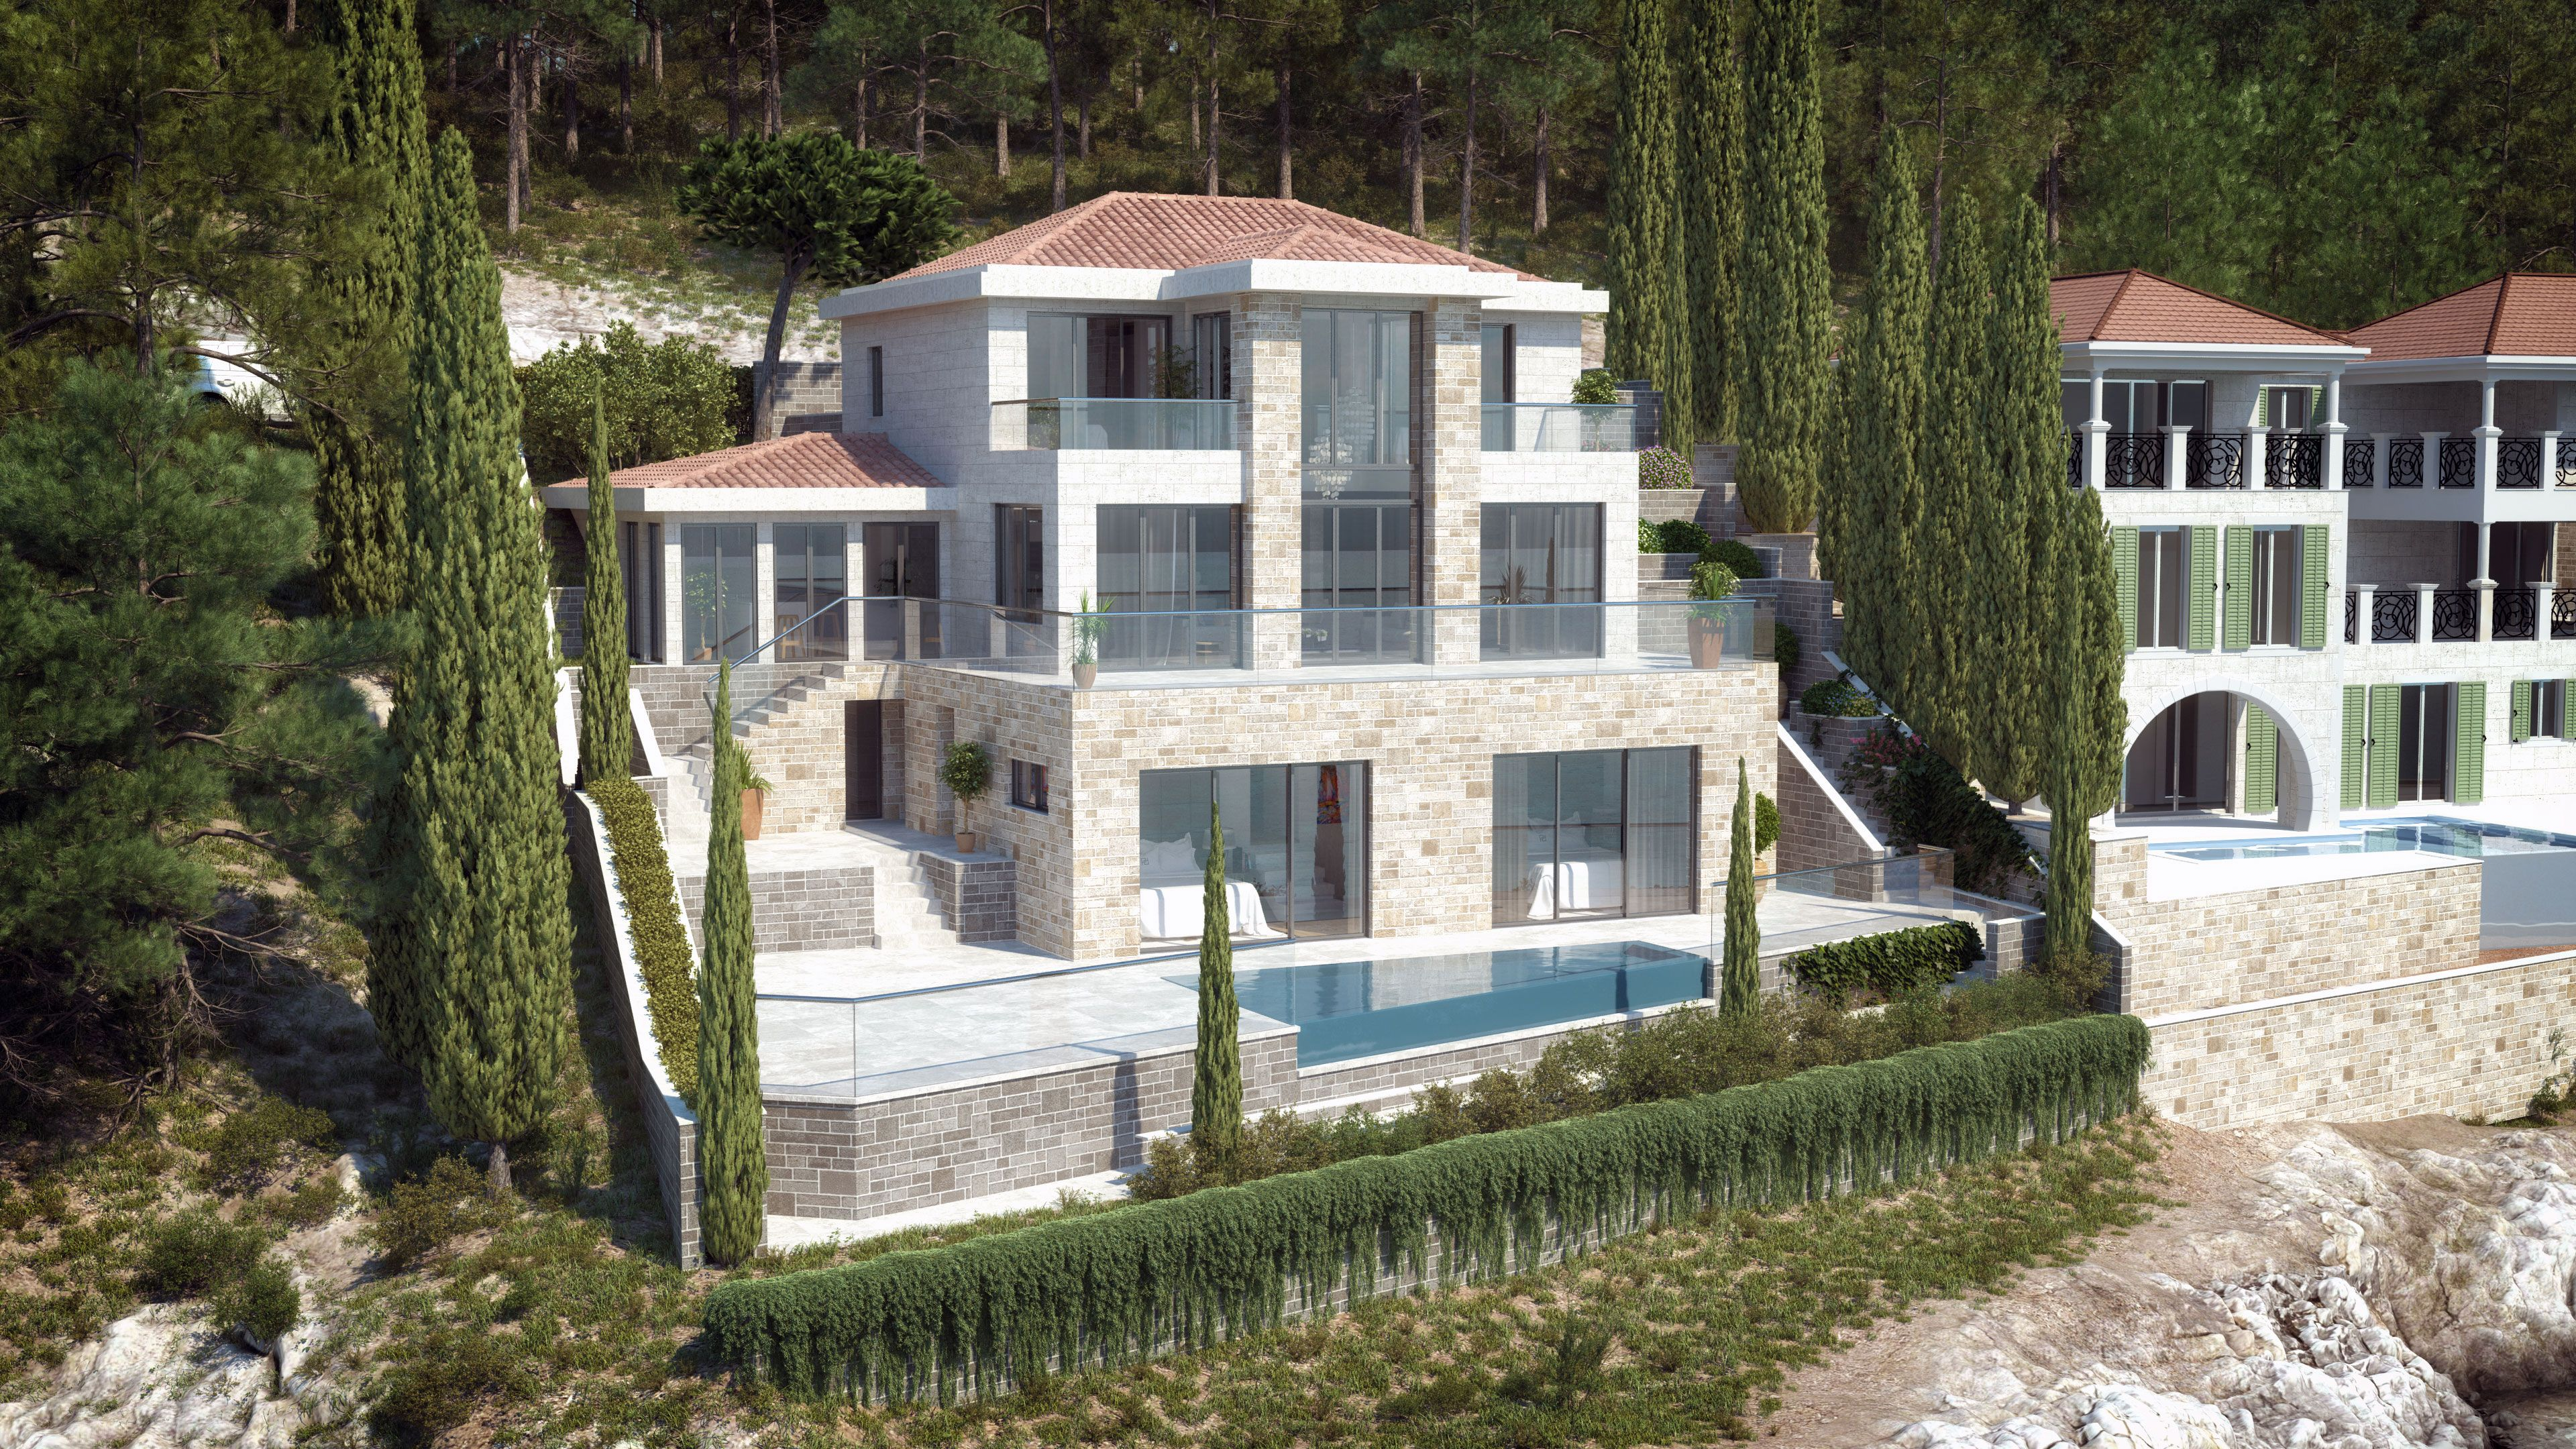 Luxury Stone Seafront Villa Ivy By Pin & Pin. http://www.pinandpin.hr